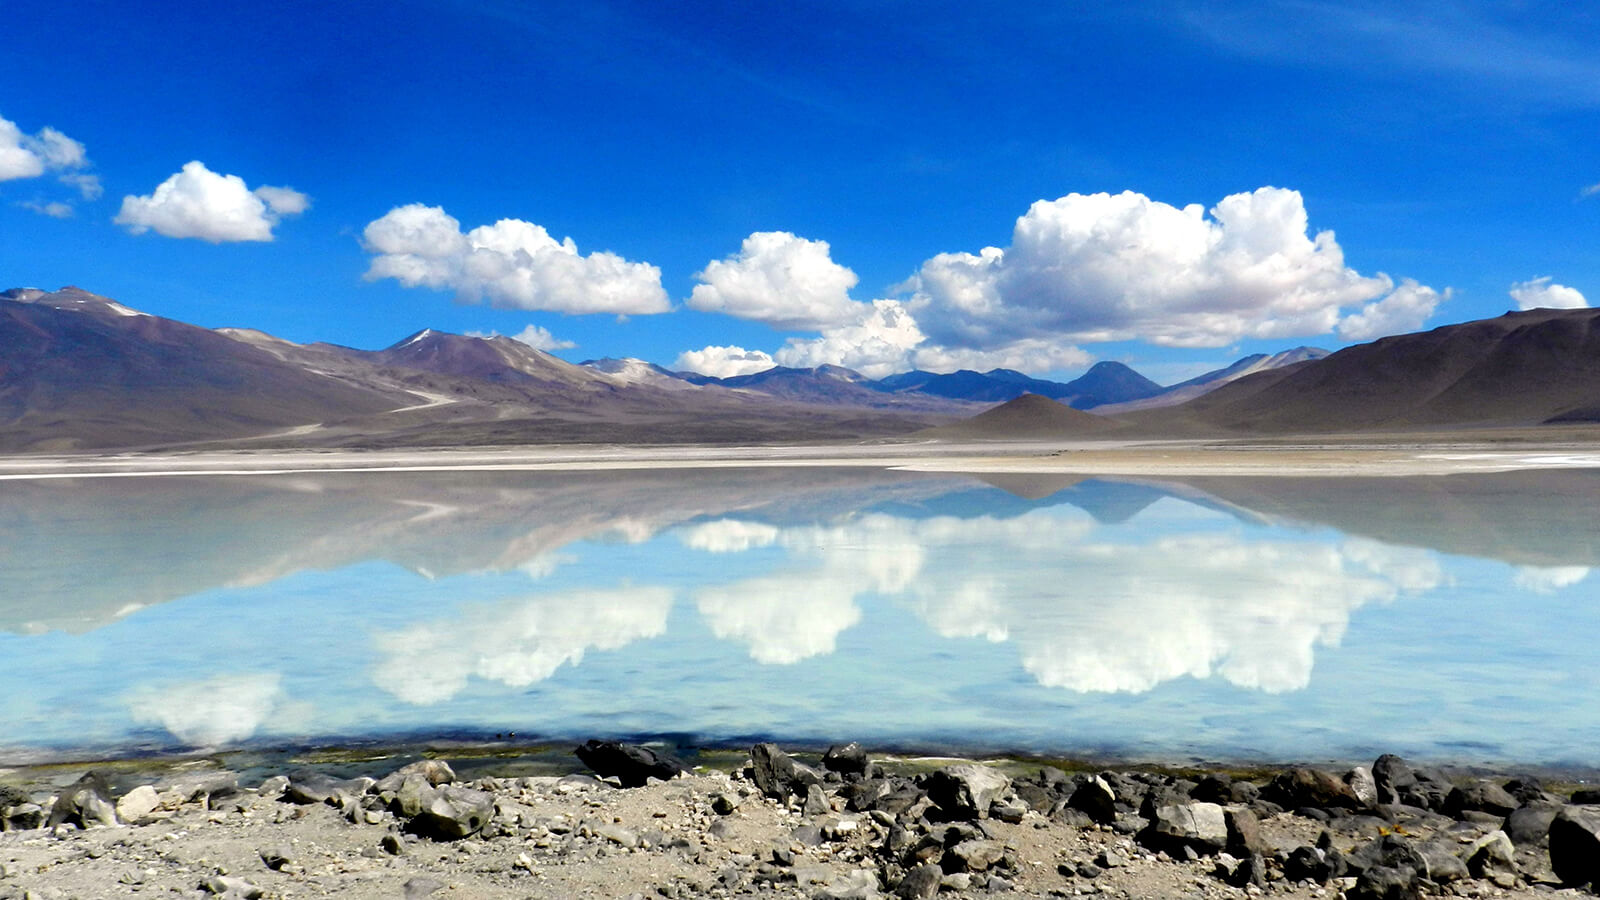 Salar de Uyuni in Bolivia is the world's largest salt flat